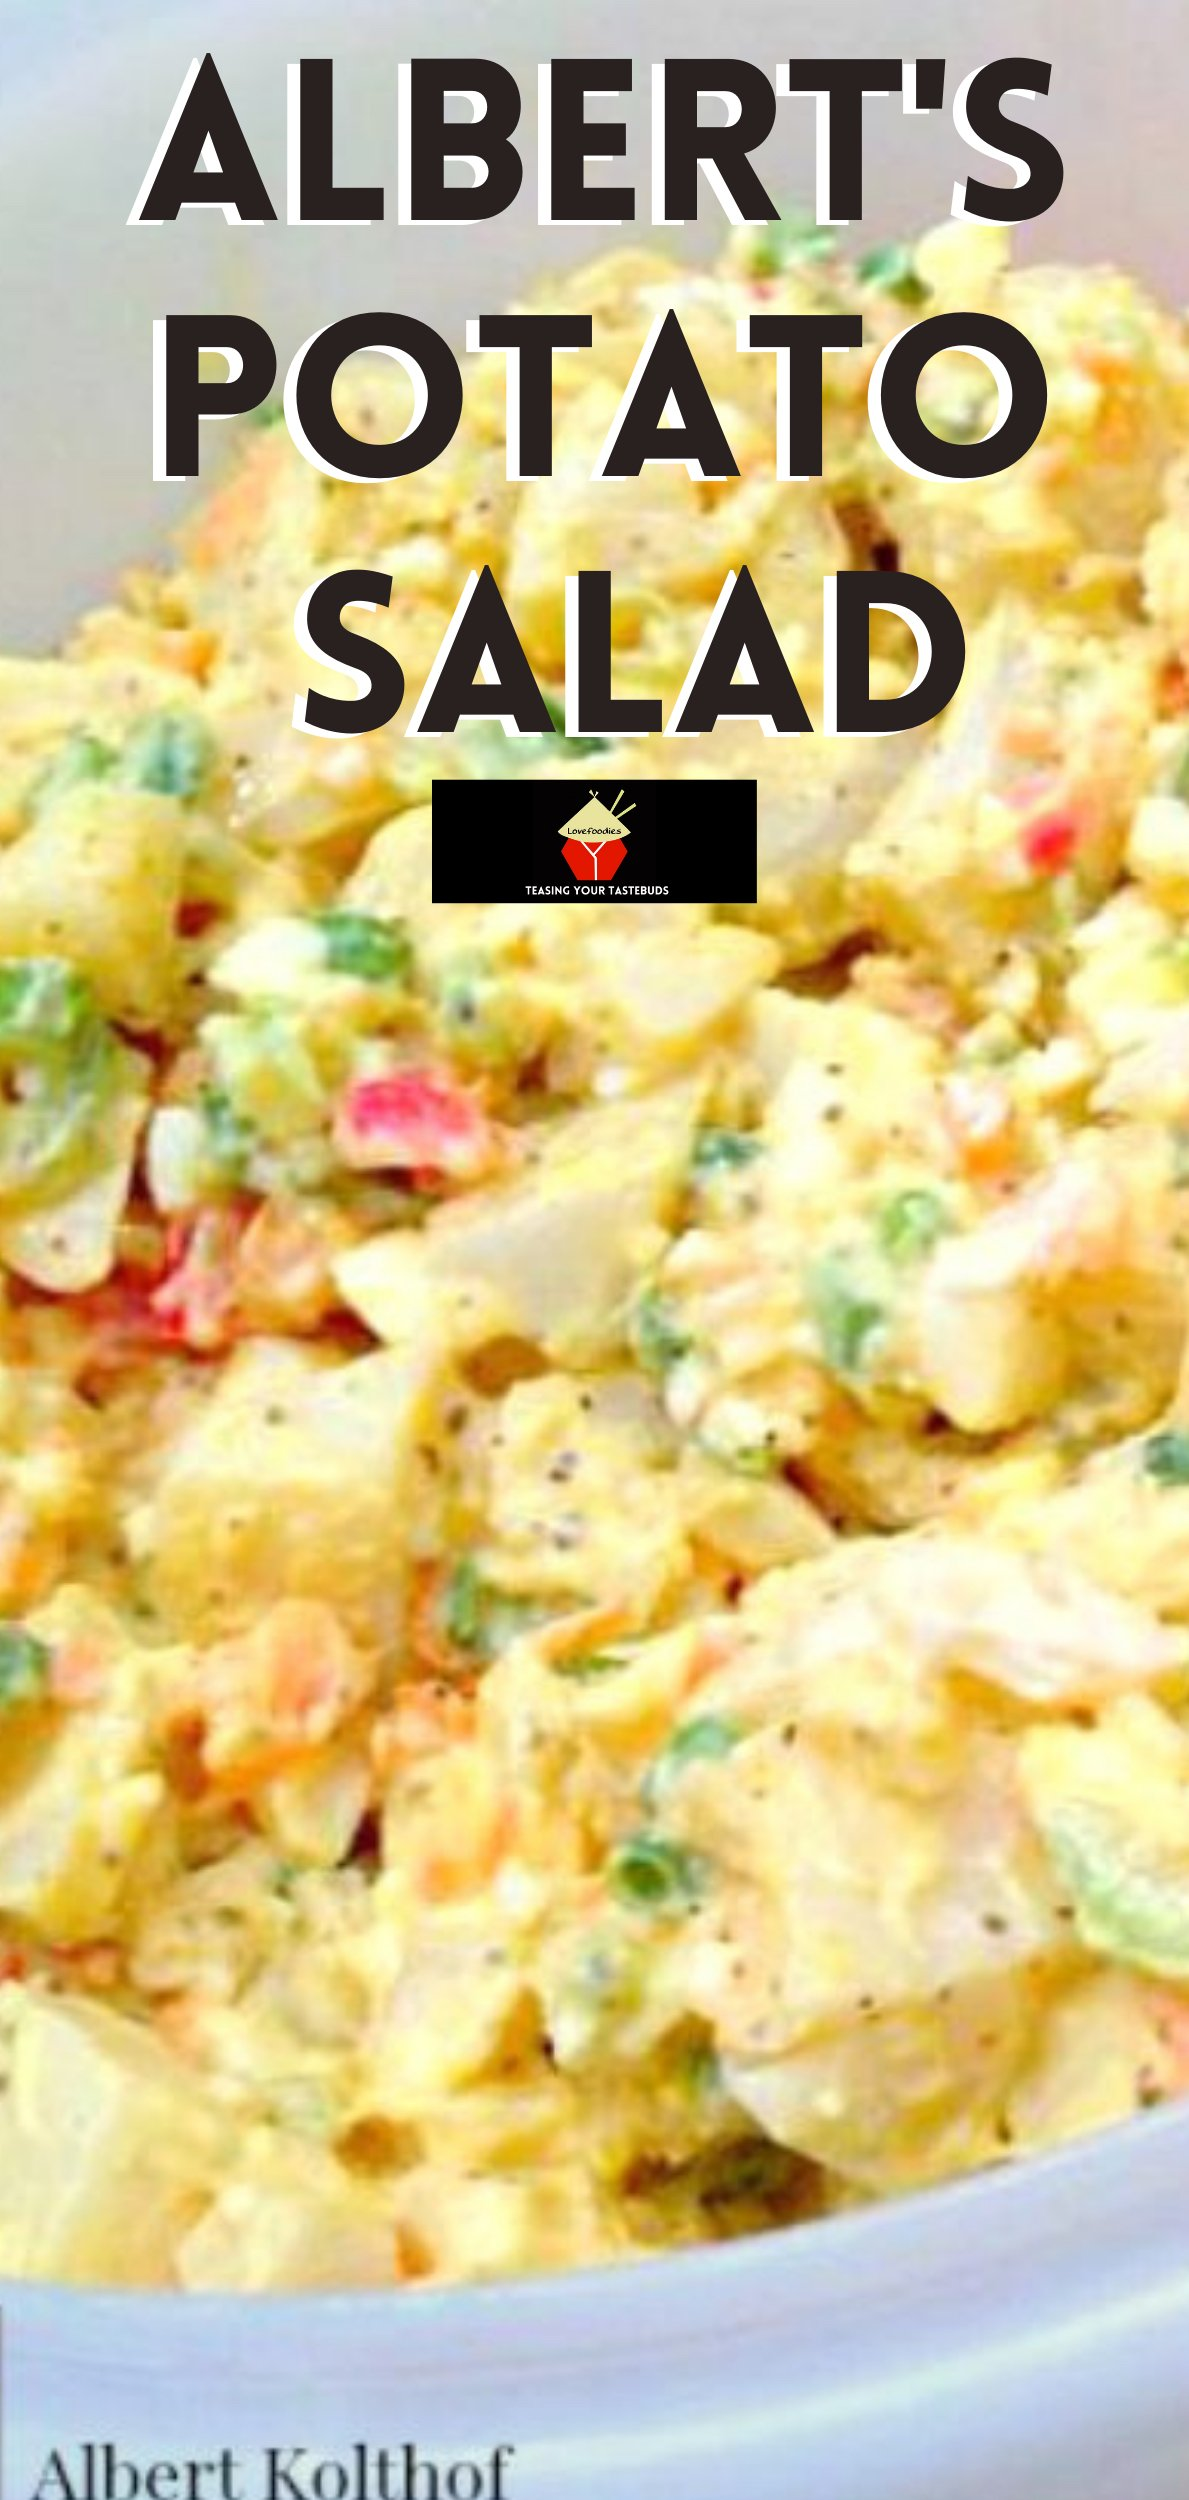 Albert's Potato Salad, Oh this is good! A delicious creamy salad with heaps of flavor. Quick and Easy to make and great for parties!